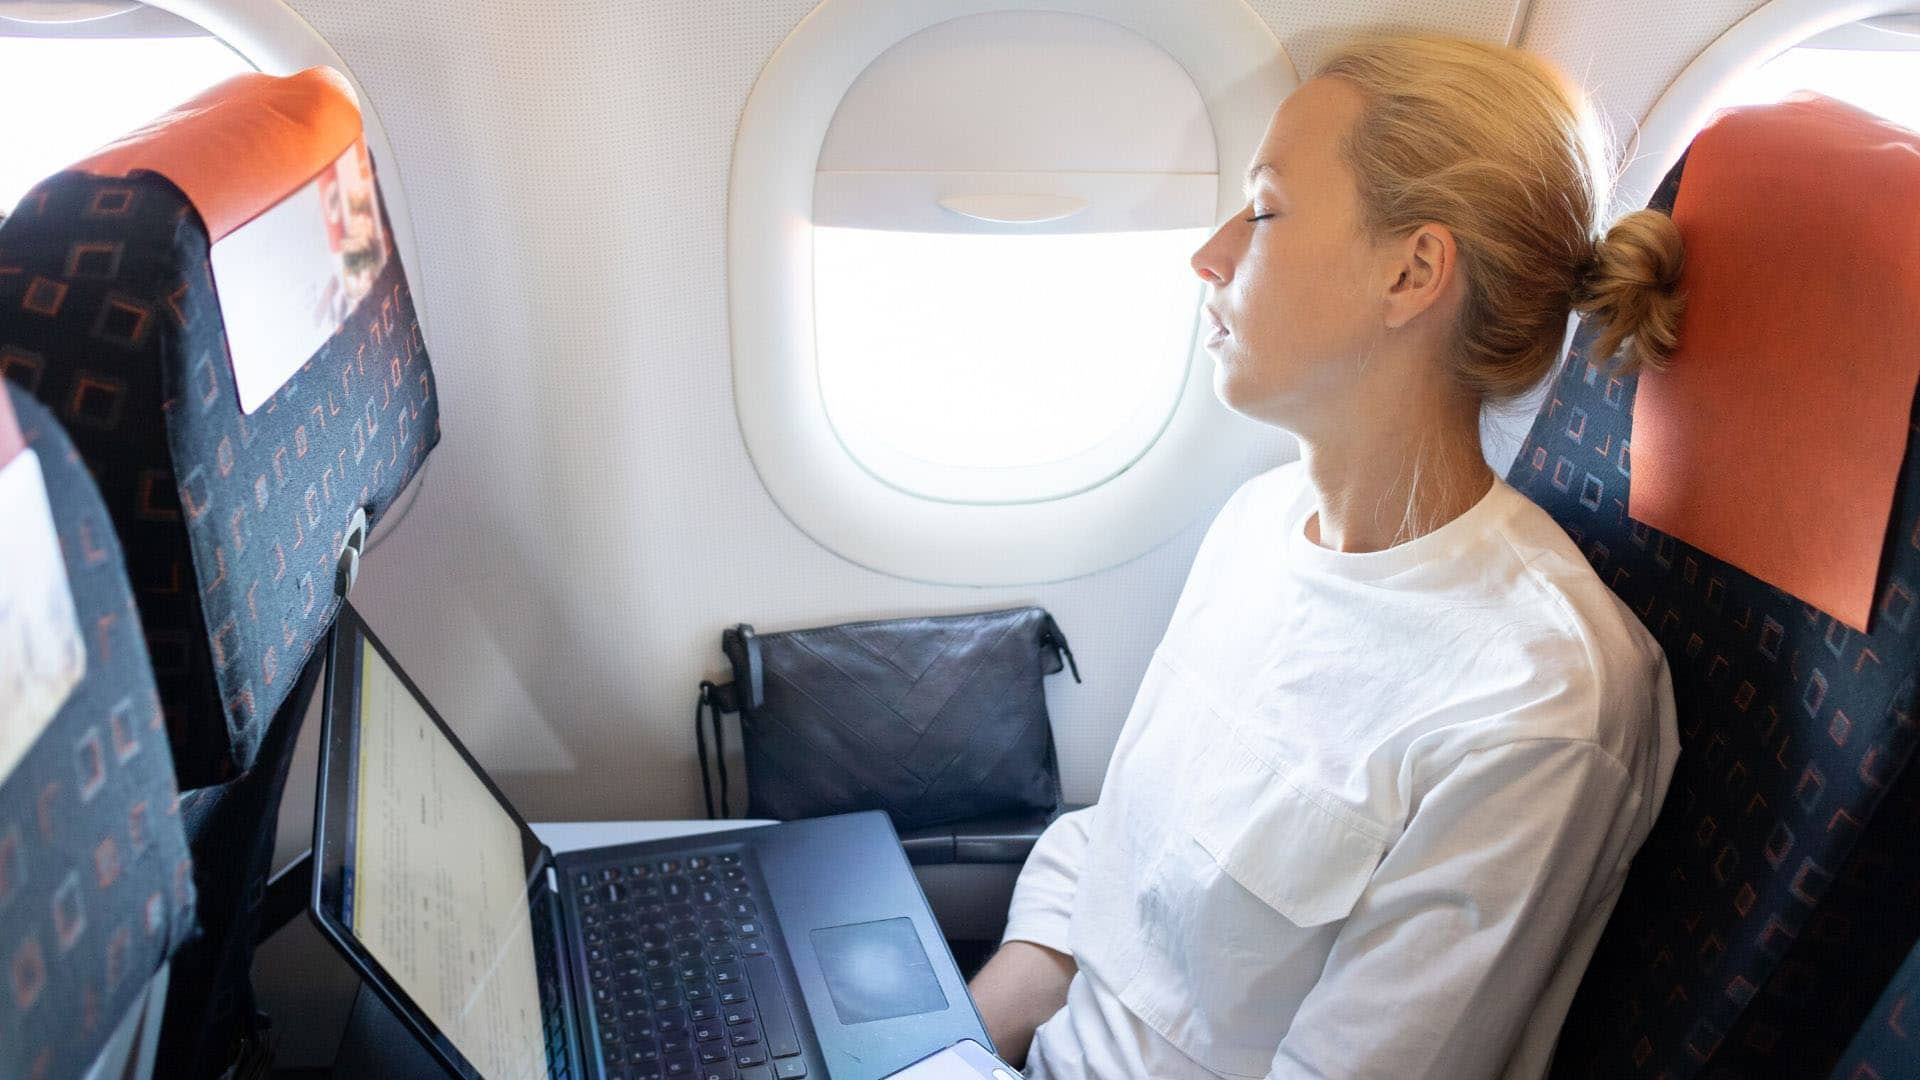 Blonde woman with bun asleep on airplane with laptop